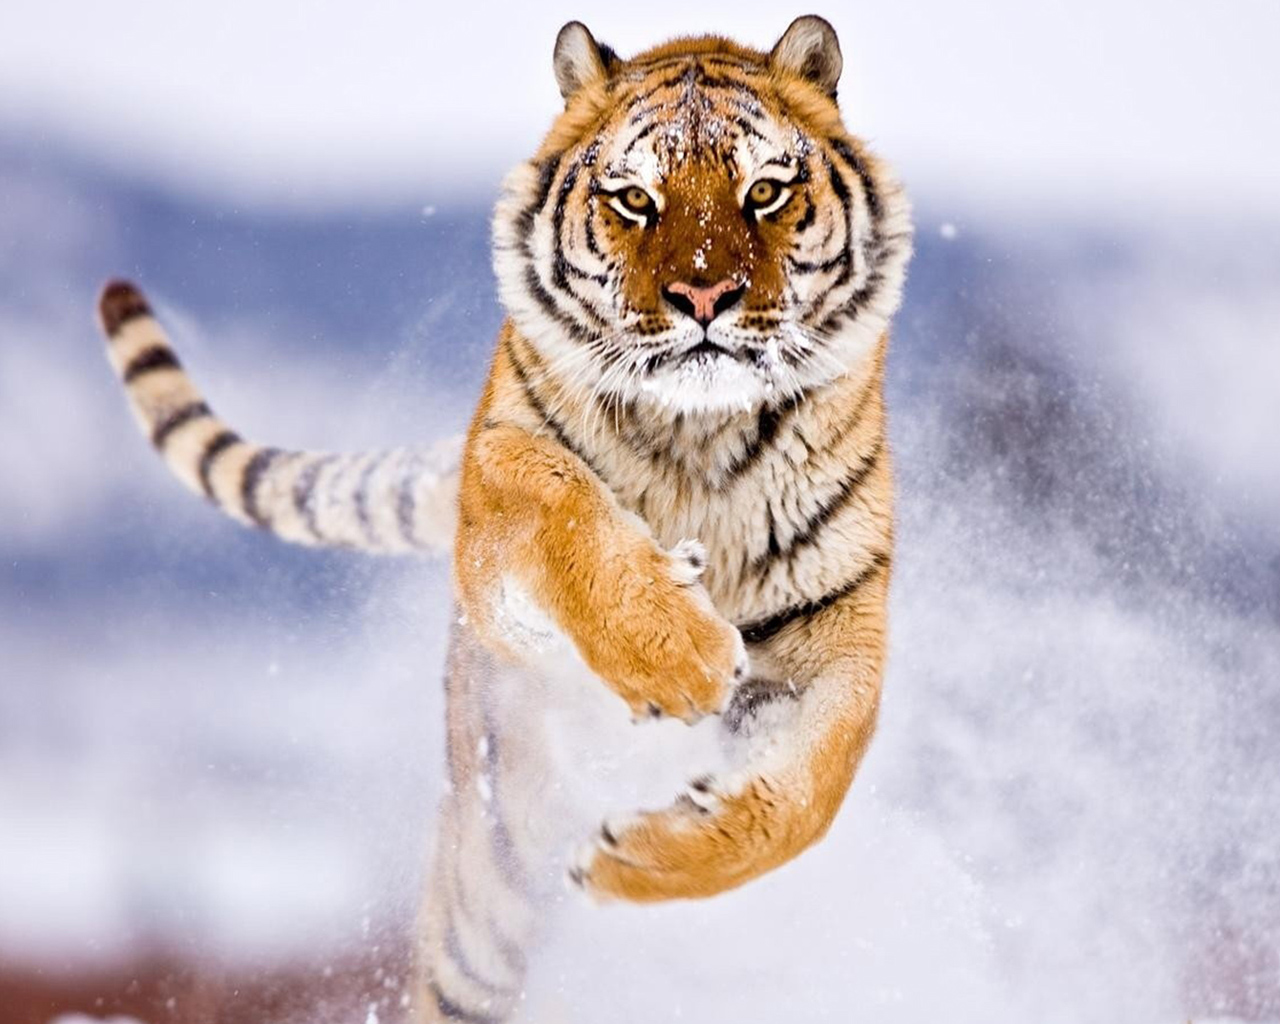 Amur Tiger in Snow 275.36 Kb